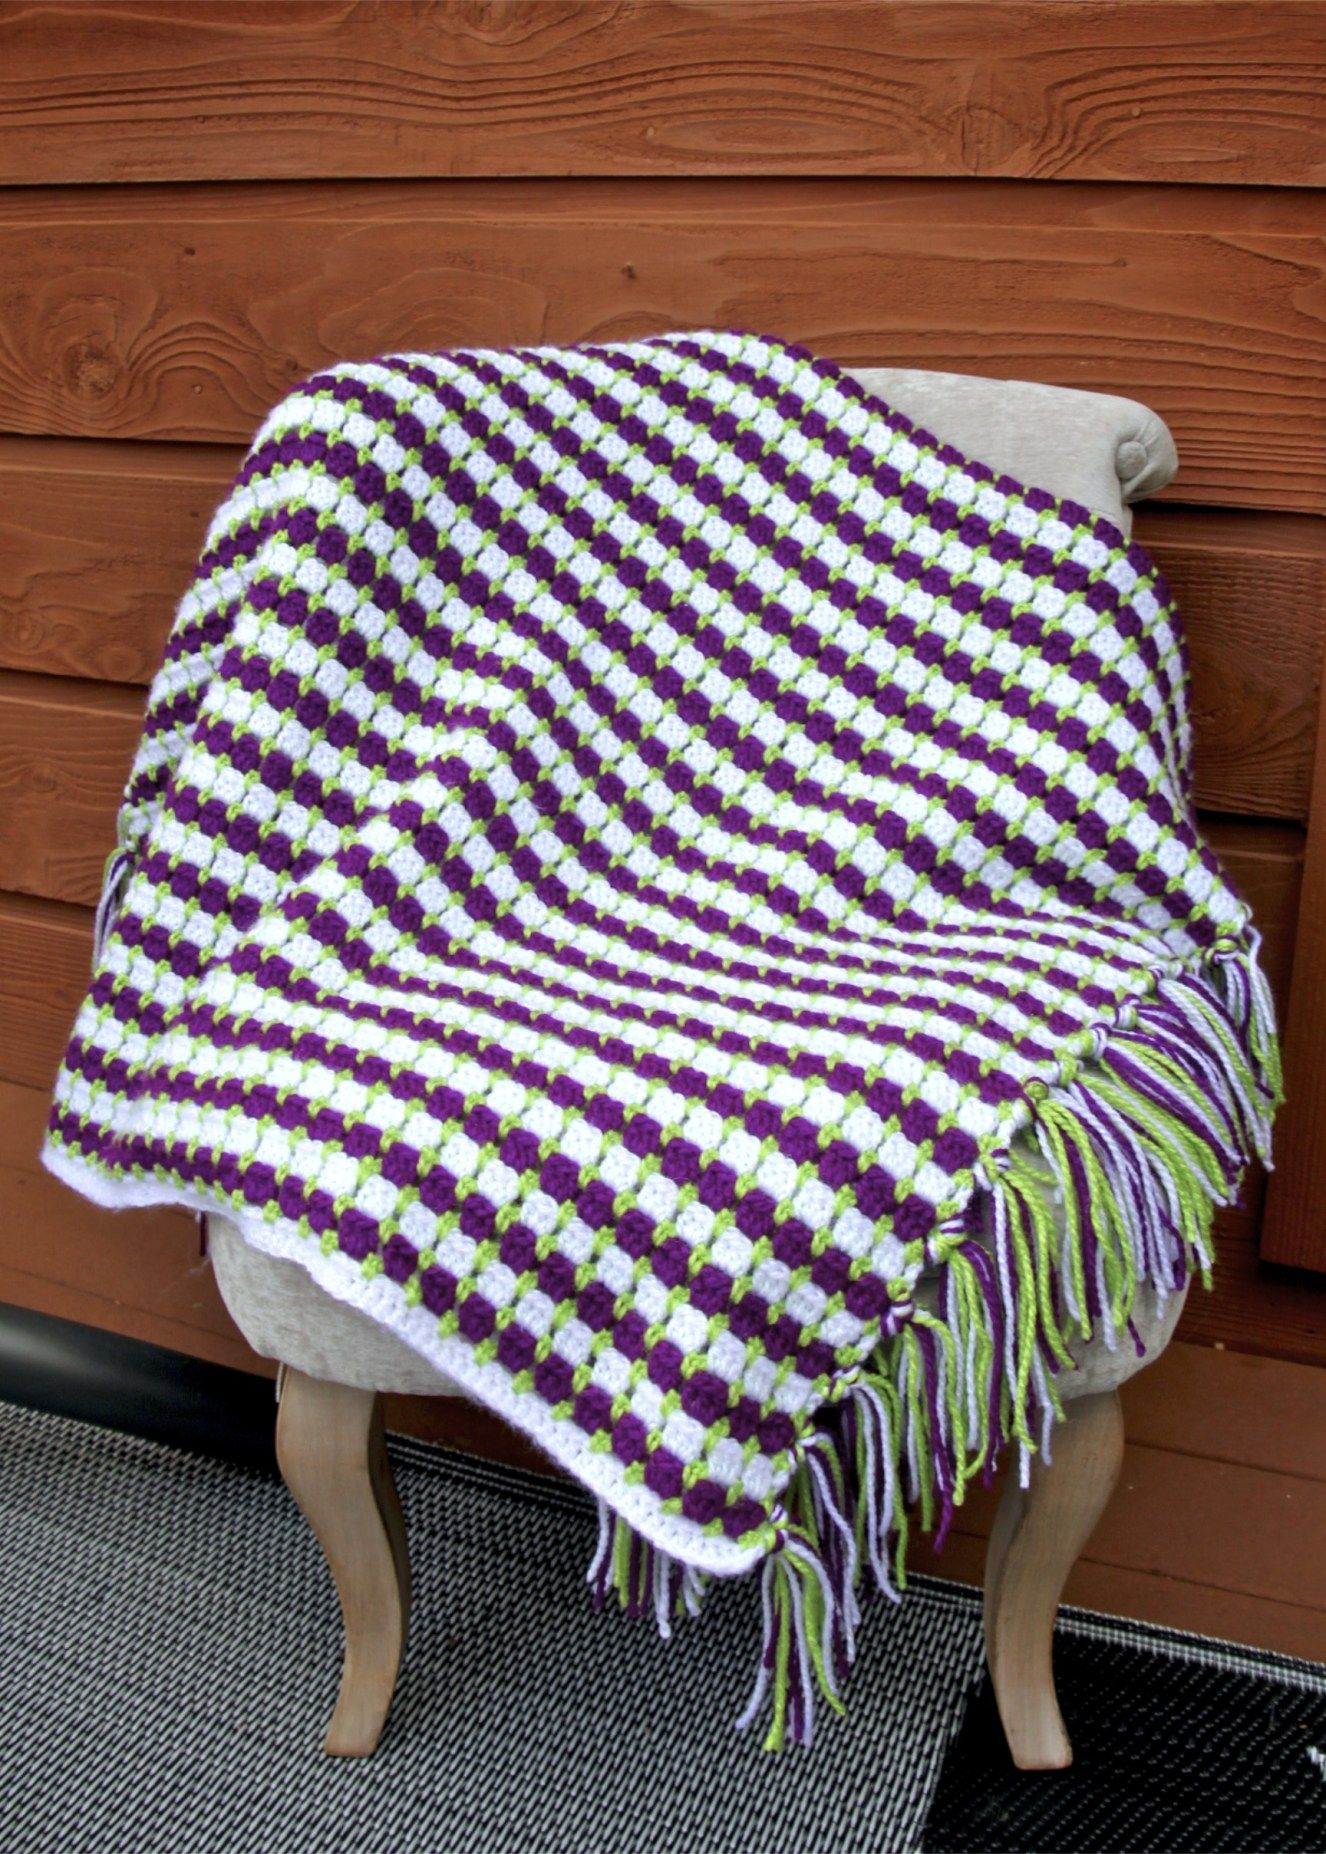 Grapevine Crochet Lap Afghan Free Pattern With Block